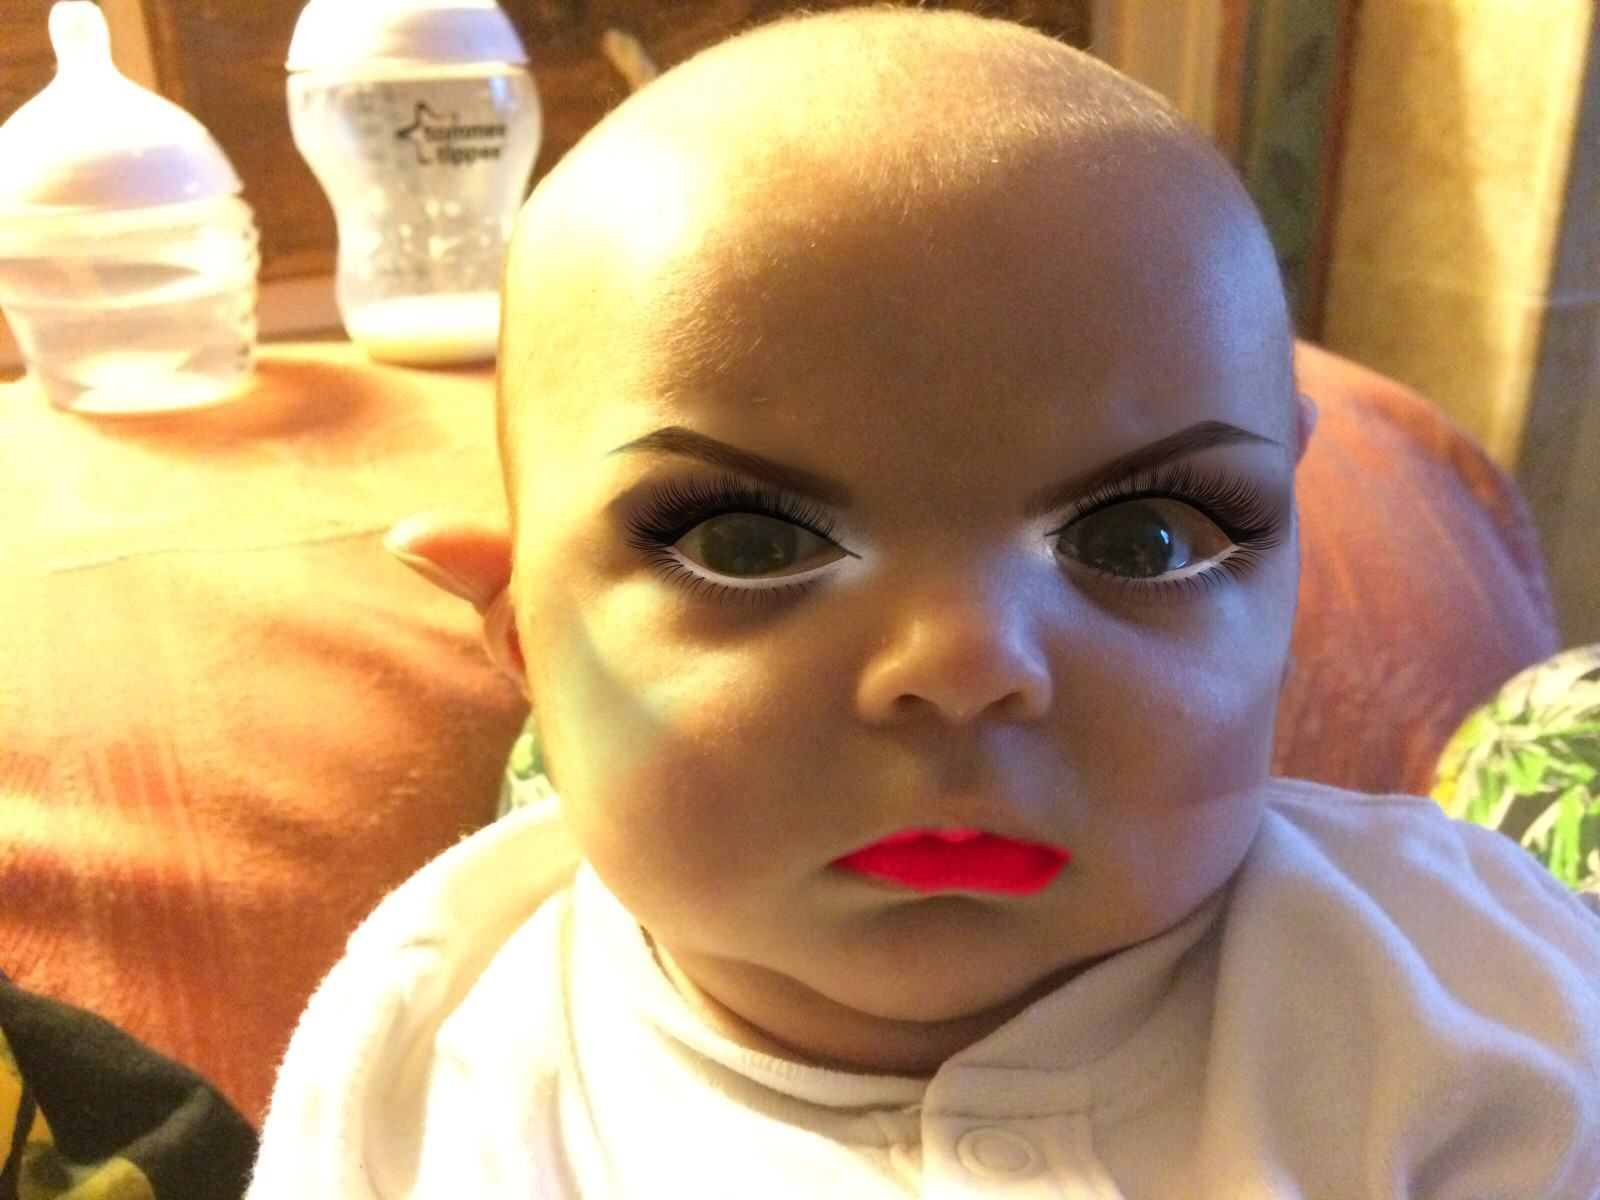 This Dad Used A Make Up App On His 7 Week Old Son 133